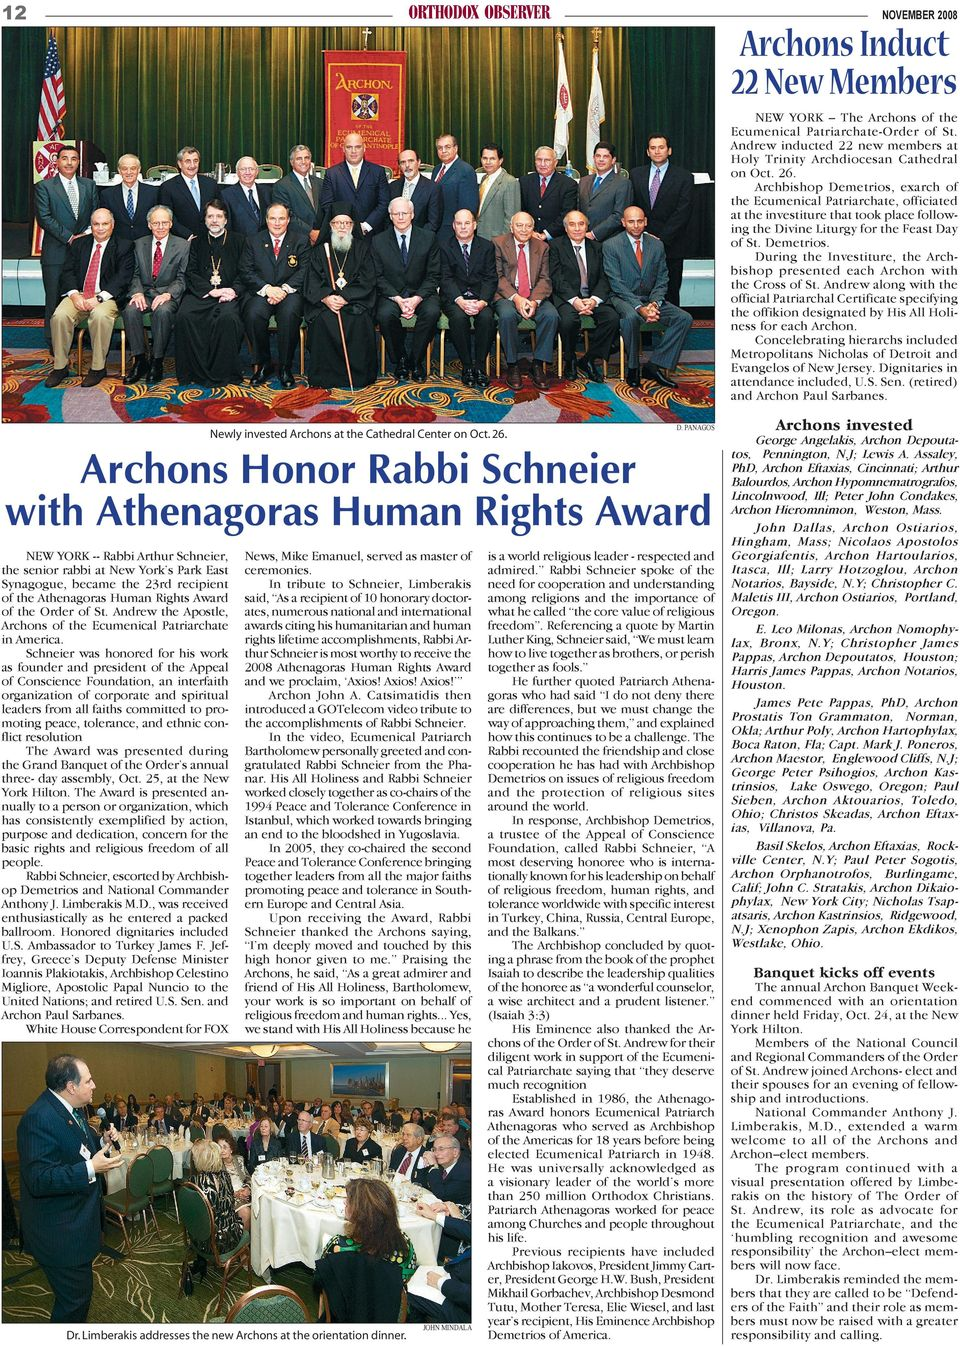 Human Rights Award of the Order of St. Andrew the Apostle, Archons of the Ecumenical Patriarchate in America.